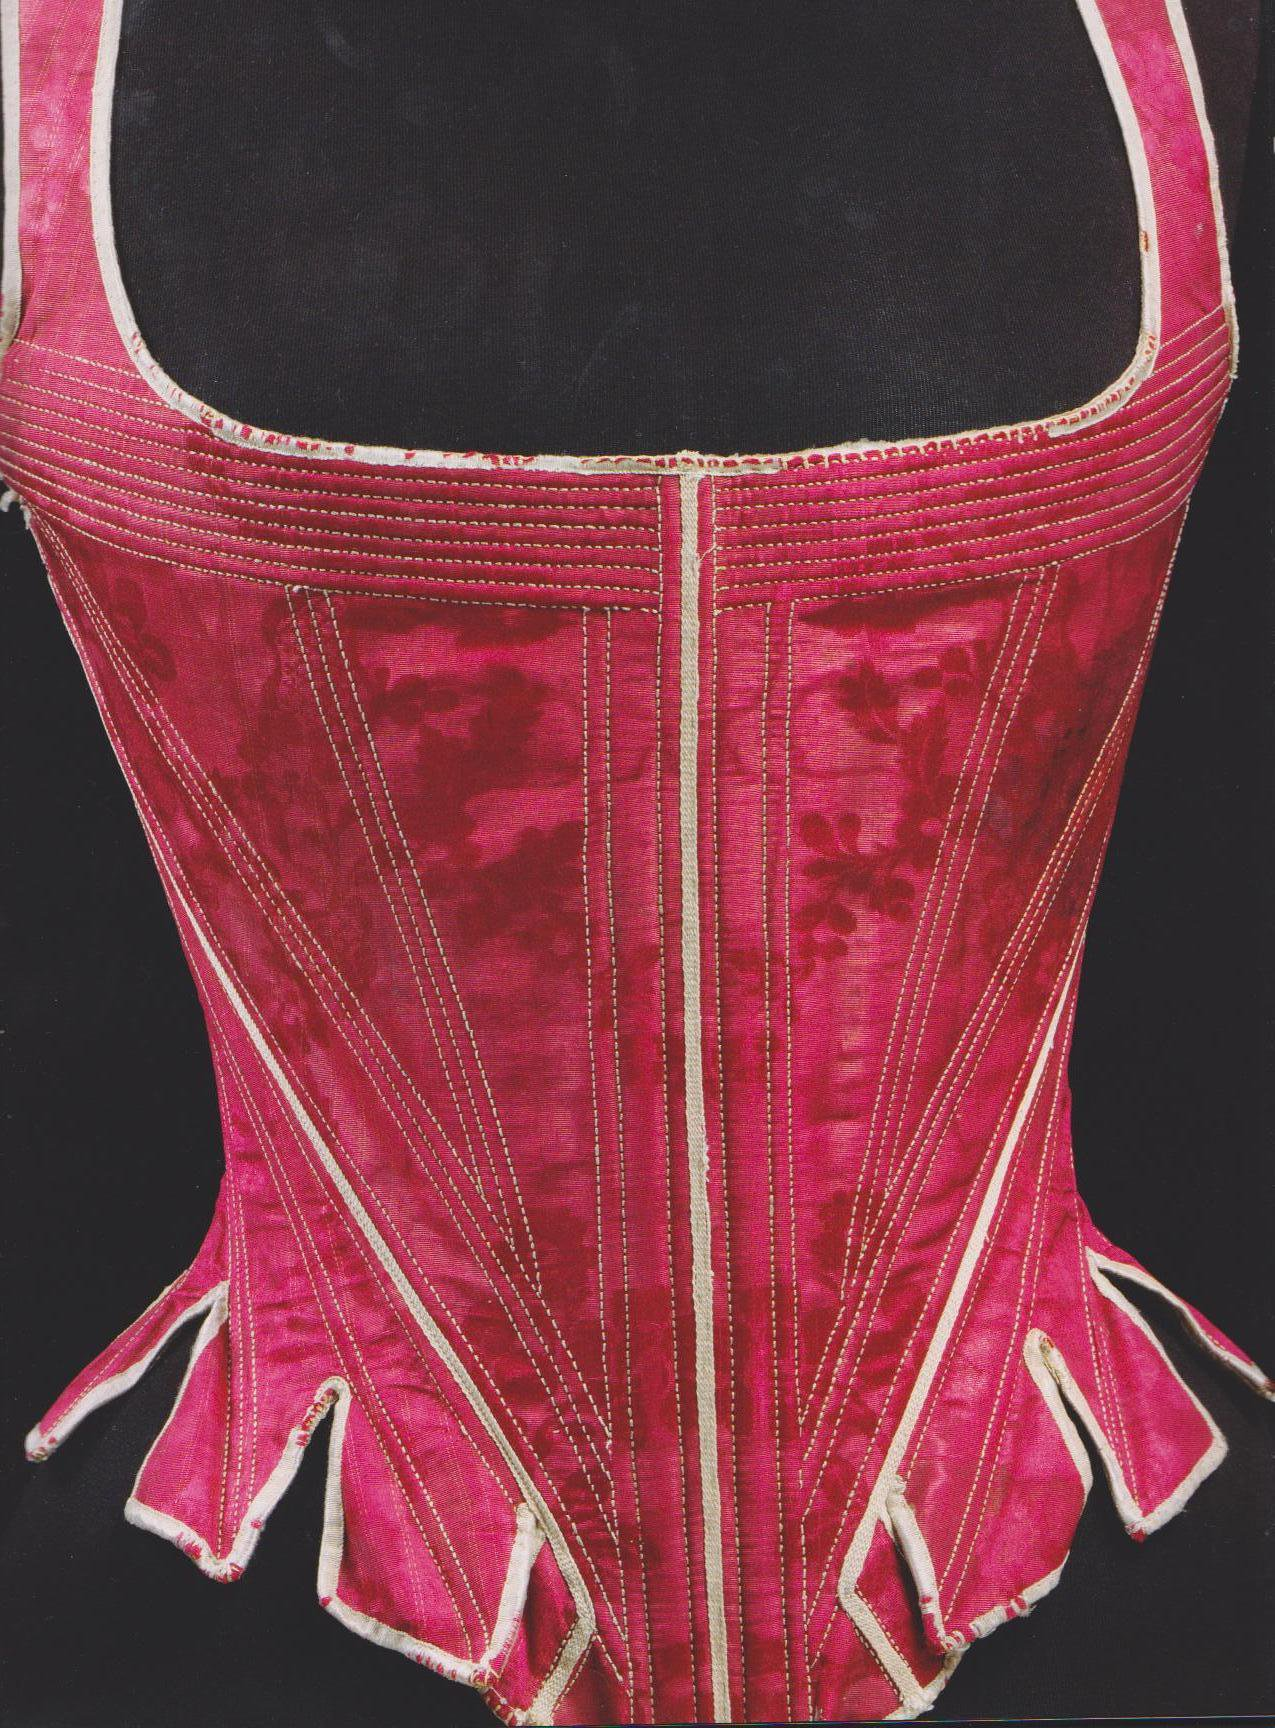 1770s stays, the staymaker, 18th c underwear and fashion, HandBound historical costumes research